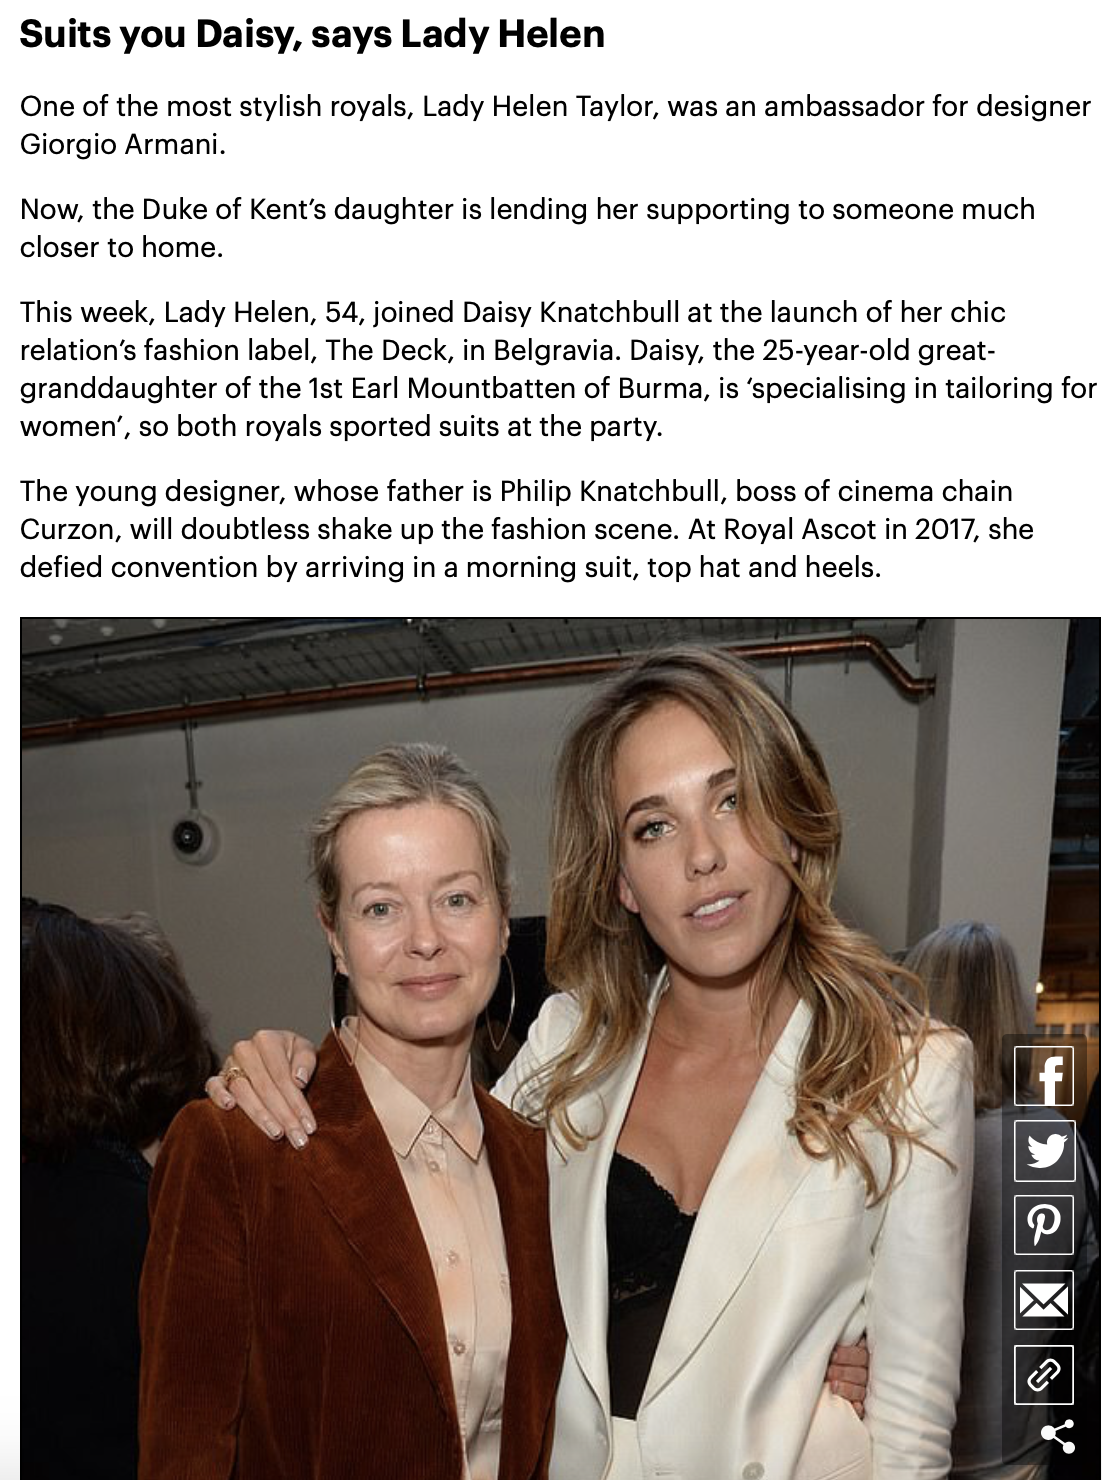 Daily Mail:Chic fashion label The Deck launches - One of the most stylish royals, Lady Helen Taylor, was an ambassador for Giorgio Armani. Now the Duke of Kent's daughter is lending her support to someone much closer to home.